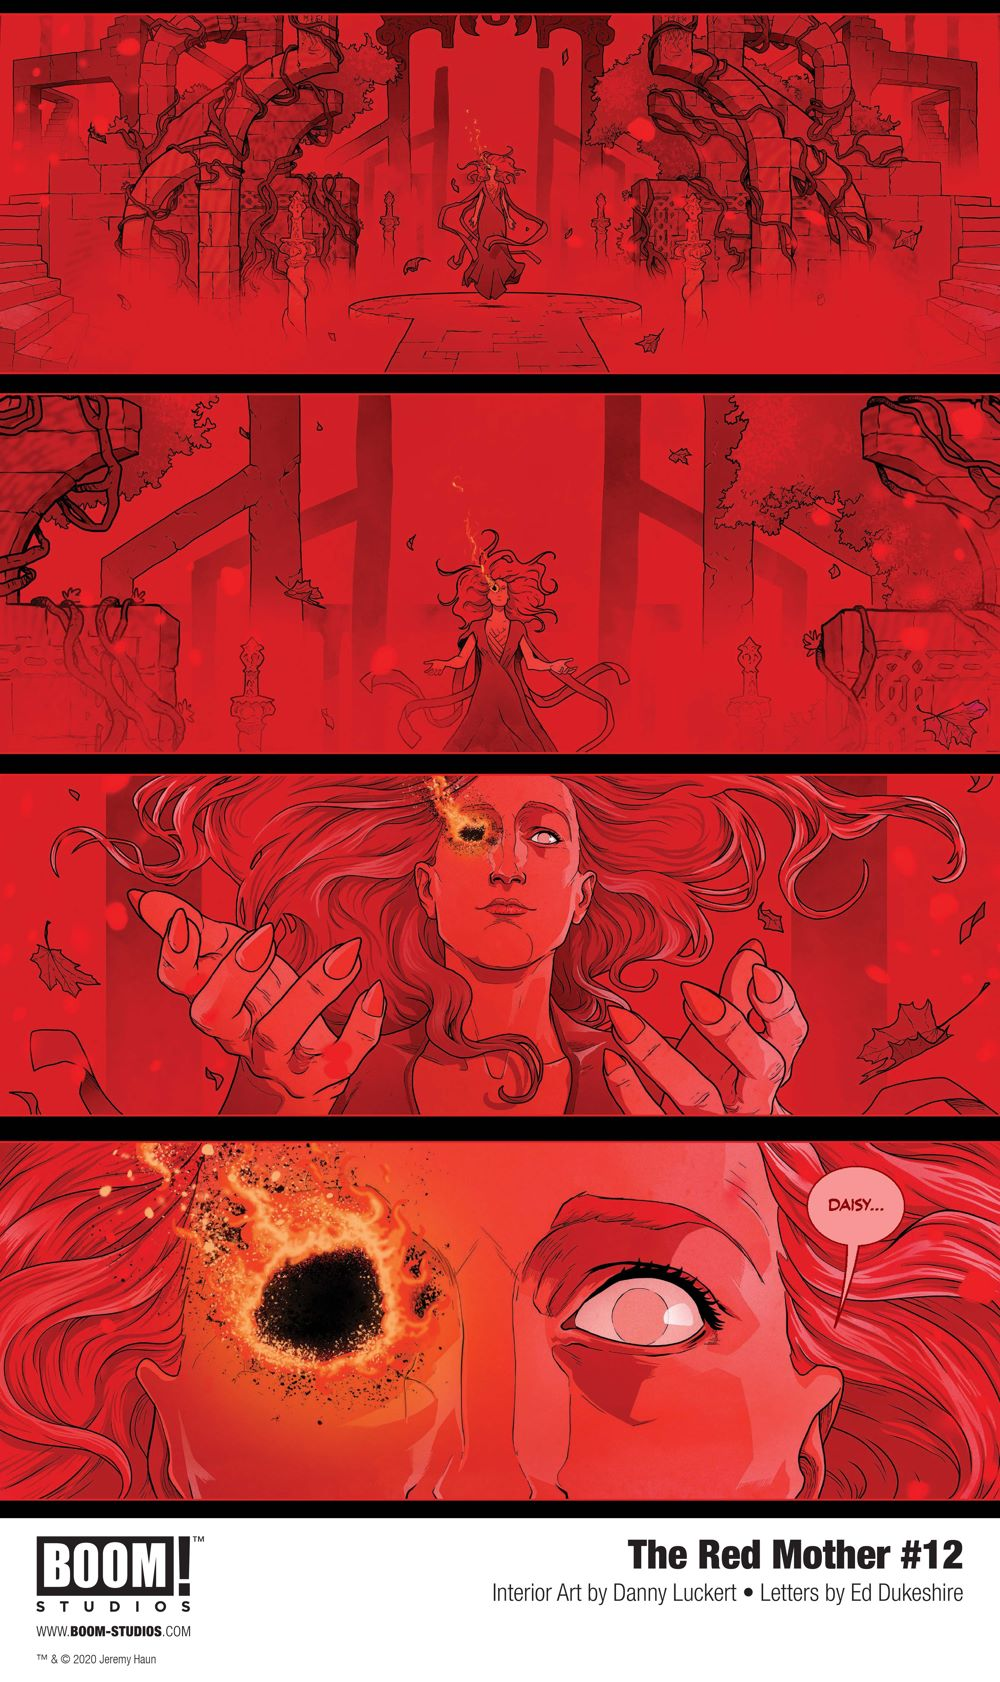 RedMother_012_InteriorArt_001_PROMO First Look at BOOM! Studios' THE RED MOTHER #12